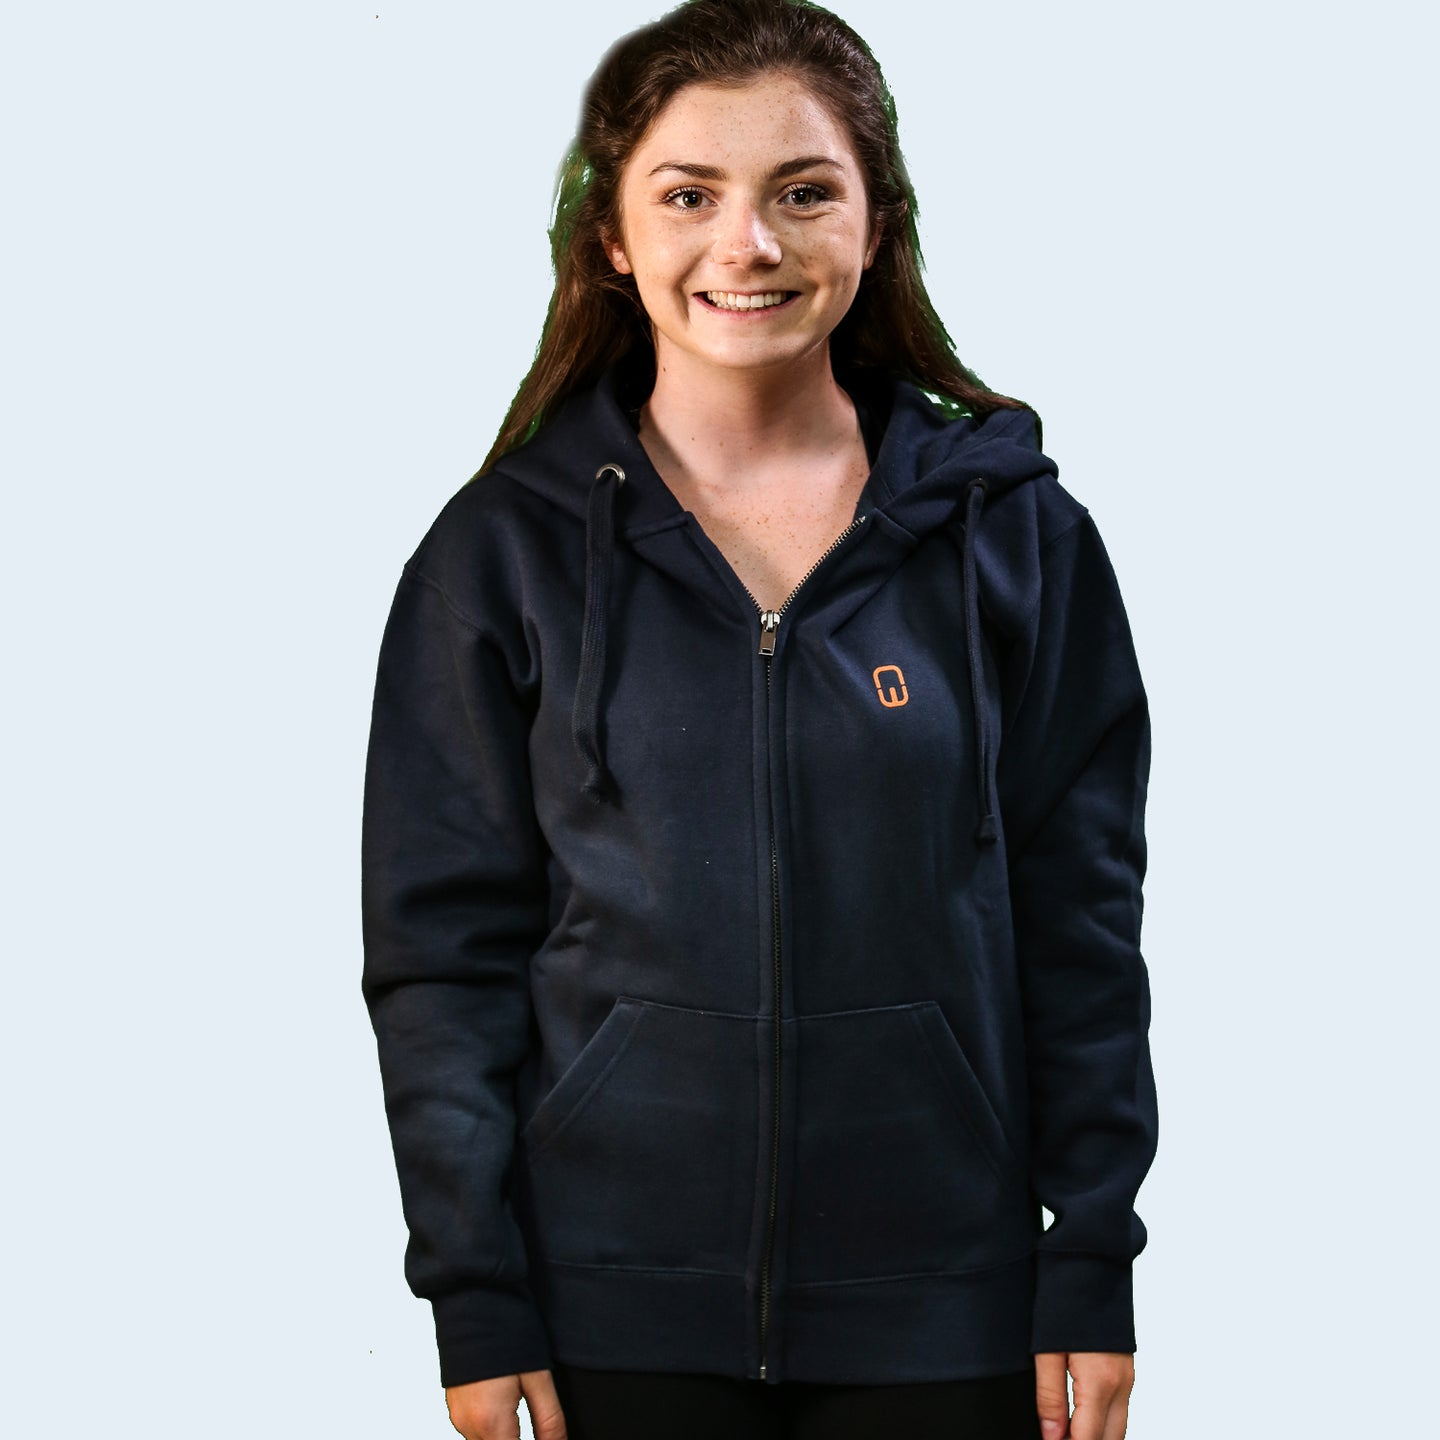 Model shot of Joanna Wilson wearing an adult's navy blue NW clothing logo Hoodie. Nile Wilson Clothing